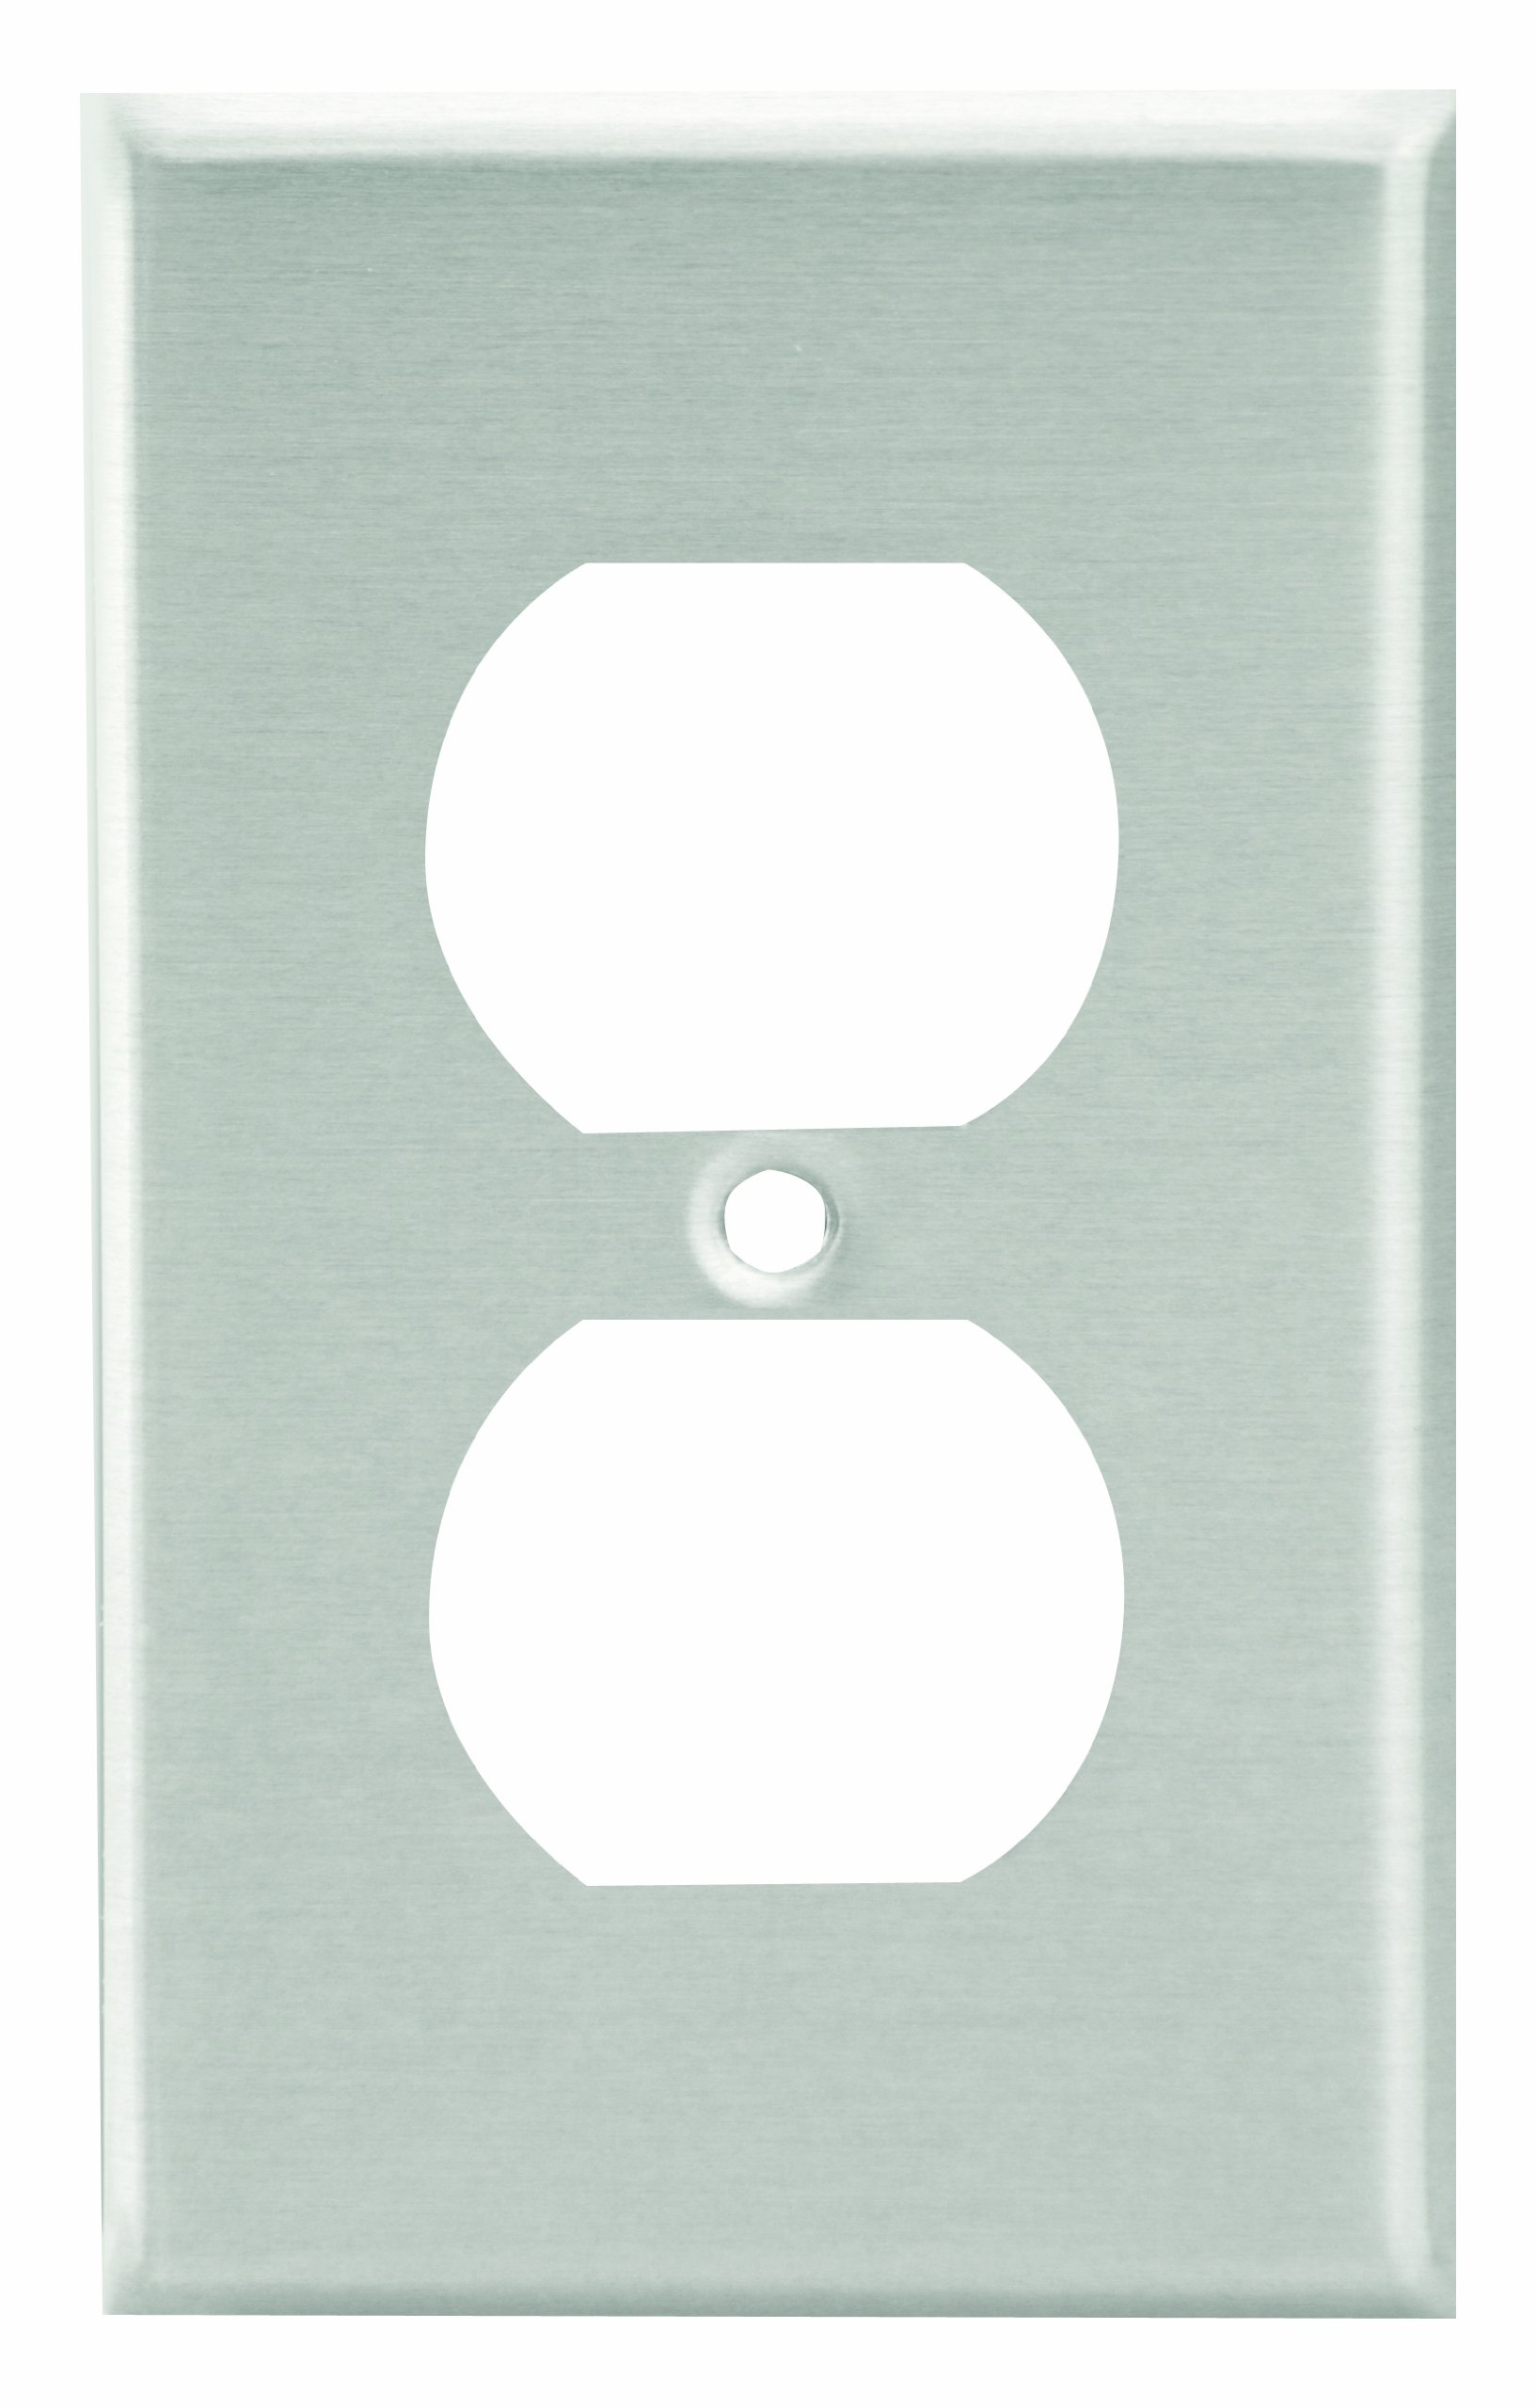 Leviton 83003 1-Gang Duplex Device Receptacle Wallplate, Standard Size, Device Mount, Aluminum